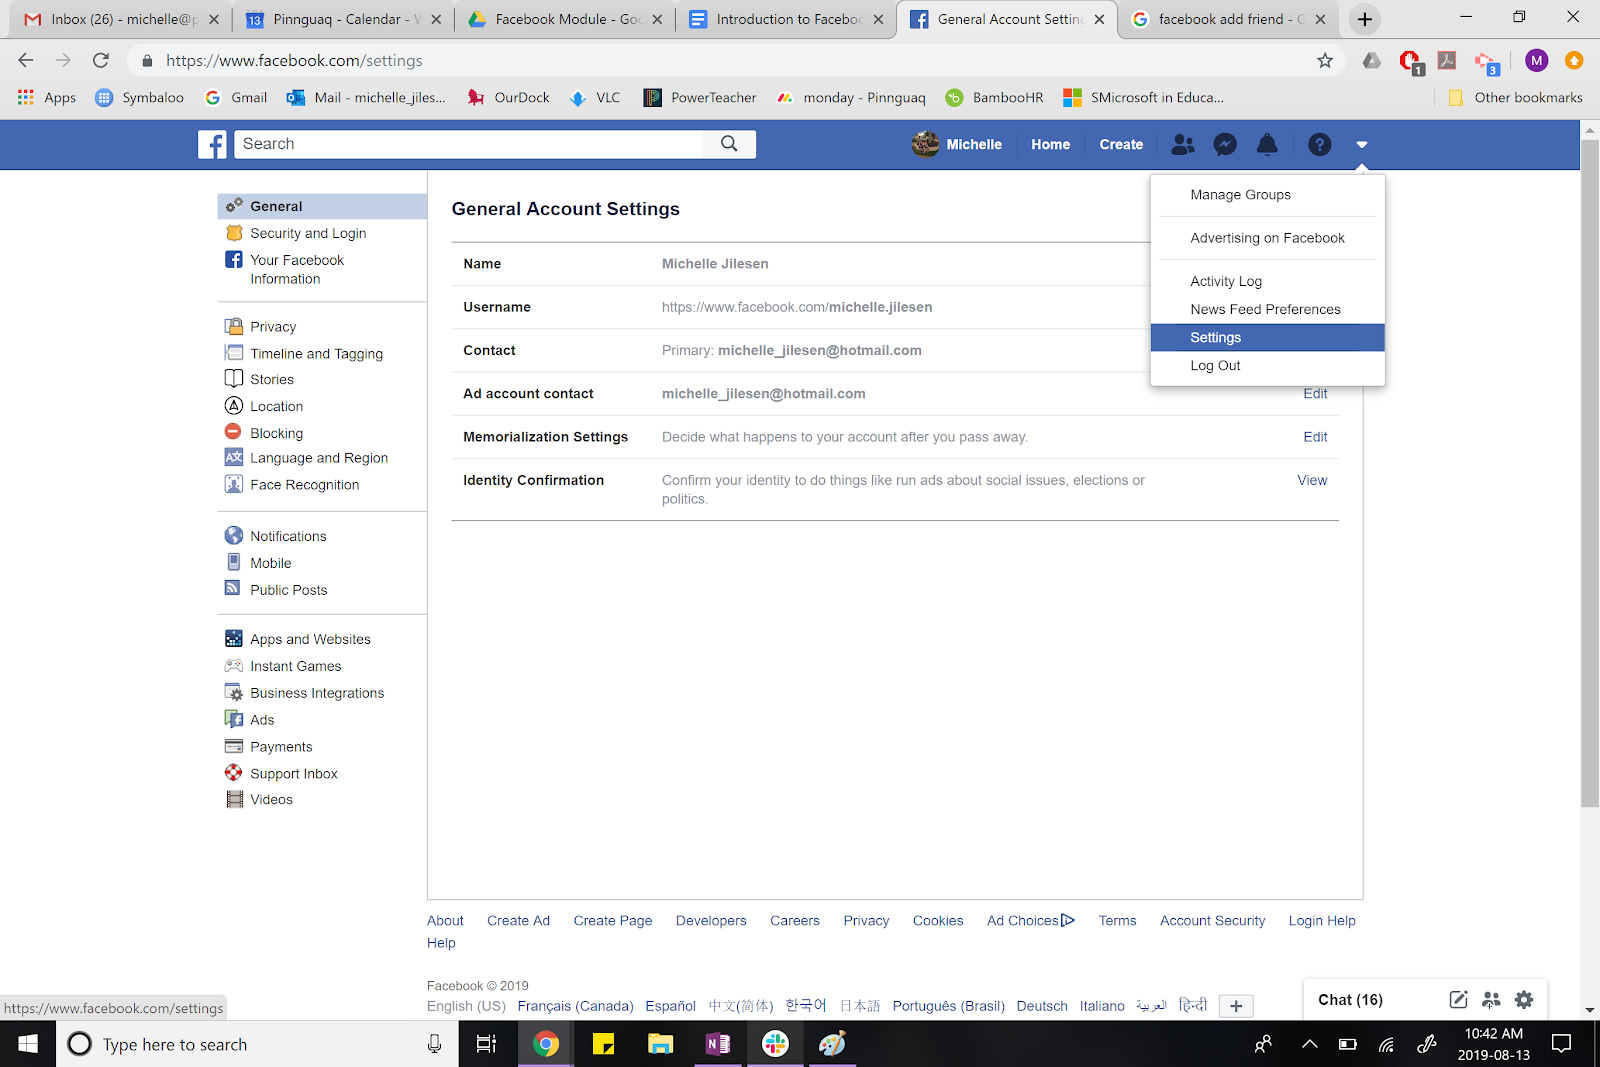 facebook page showing the setting option.